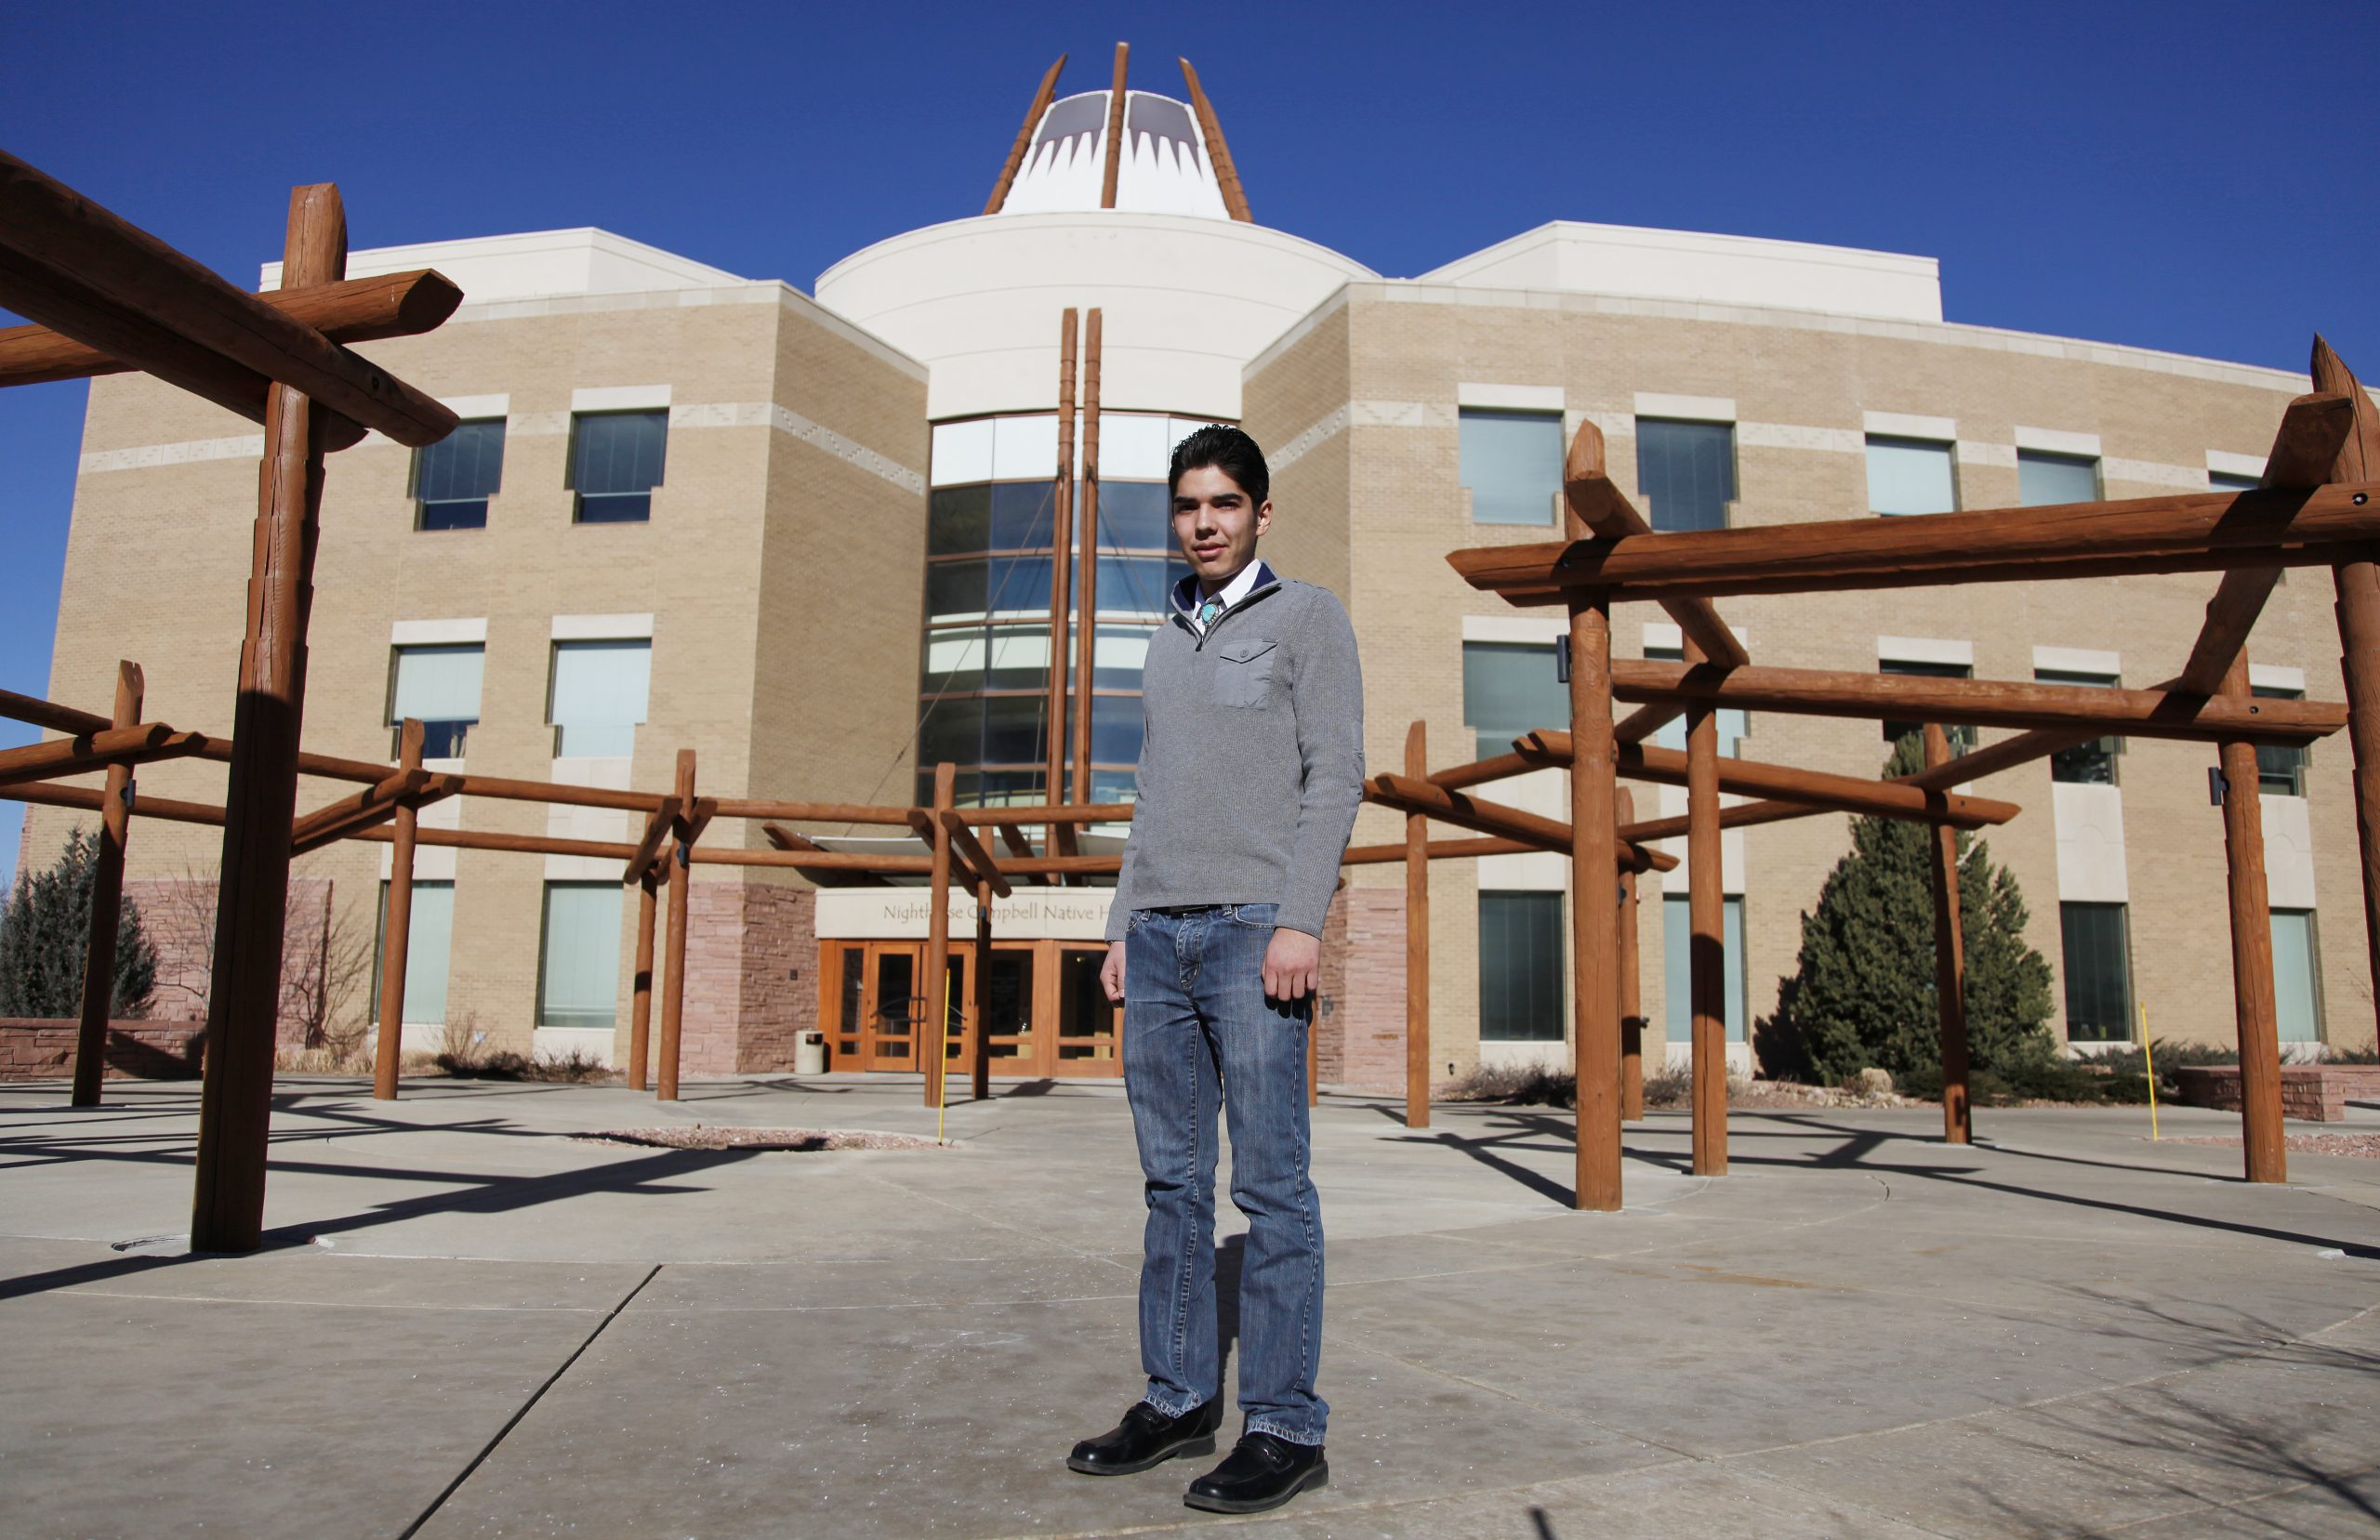 Joaquin Gallegos at the Centers for American Indian and Alaska Native Health at the University of Colorado Anschutz Campus as an undergraduate in this 2012 photo.